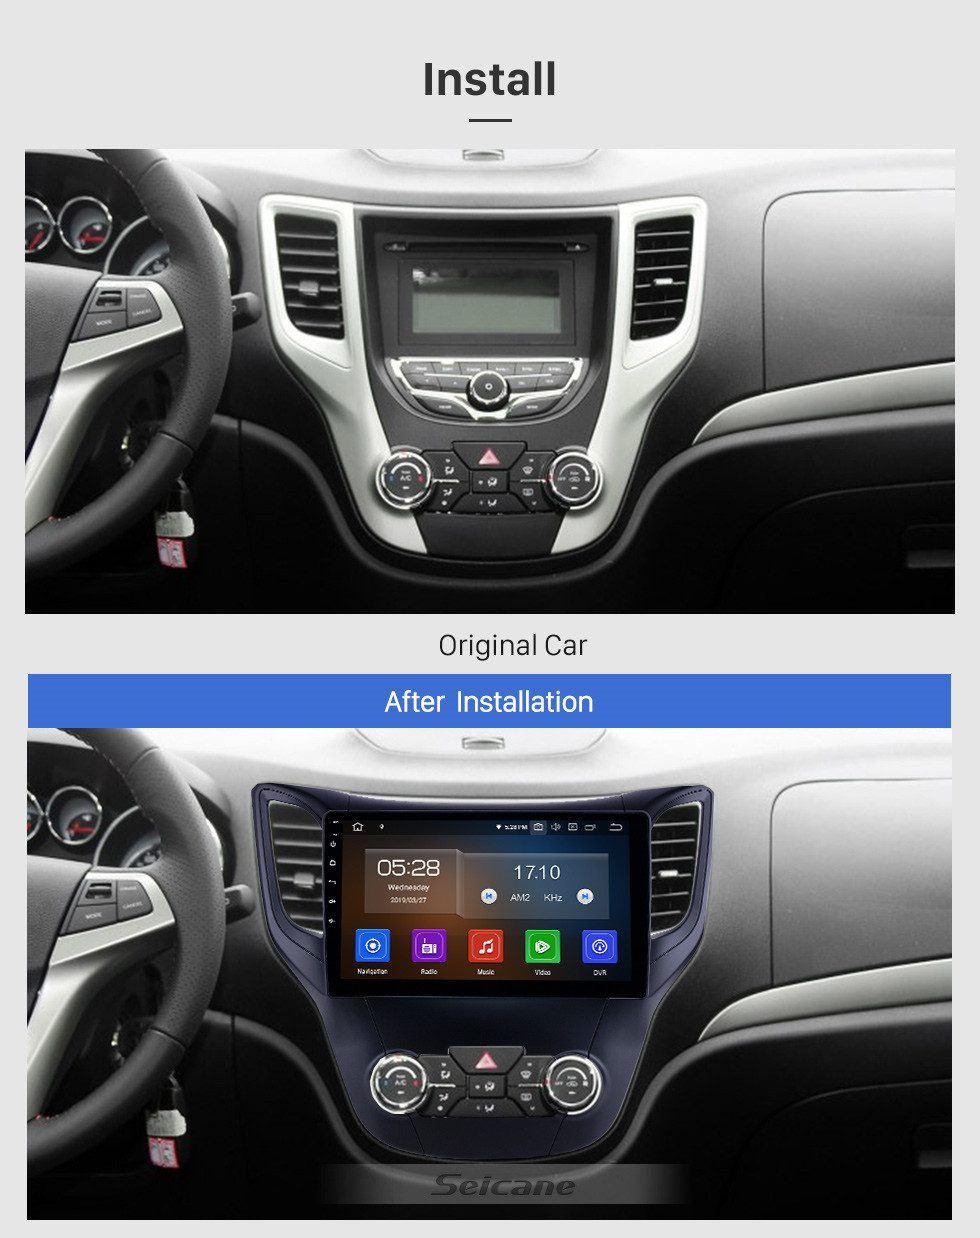 Seicane 10.1 inch Android 10.0 Radio for 2012-2016 Changan CS35 Bluetooth HD Touchscreen GPS Navigation Carplay USB support OBD2 Backup camera